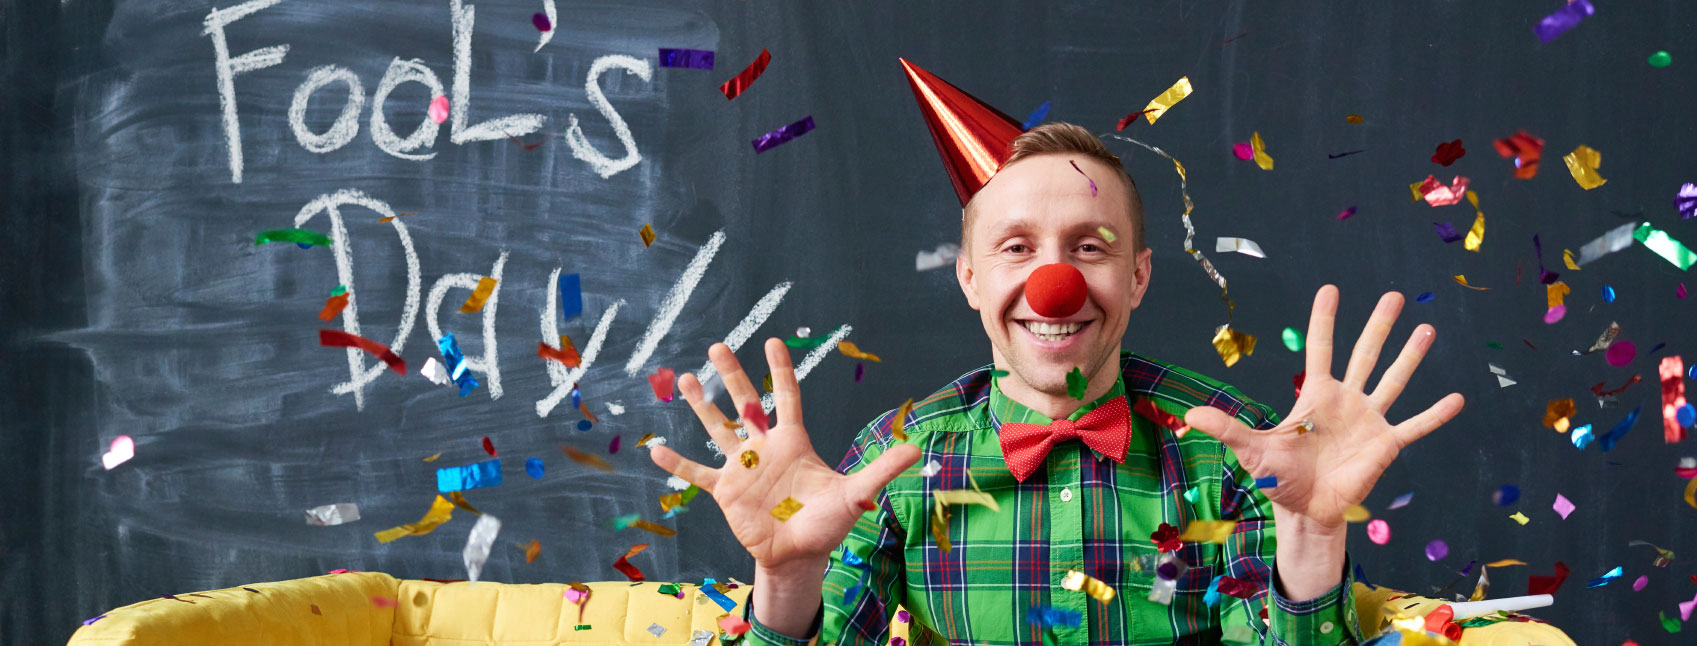 6 April Fools' Day Pranks to Play on Your Kids